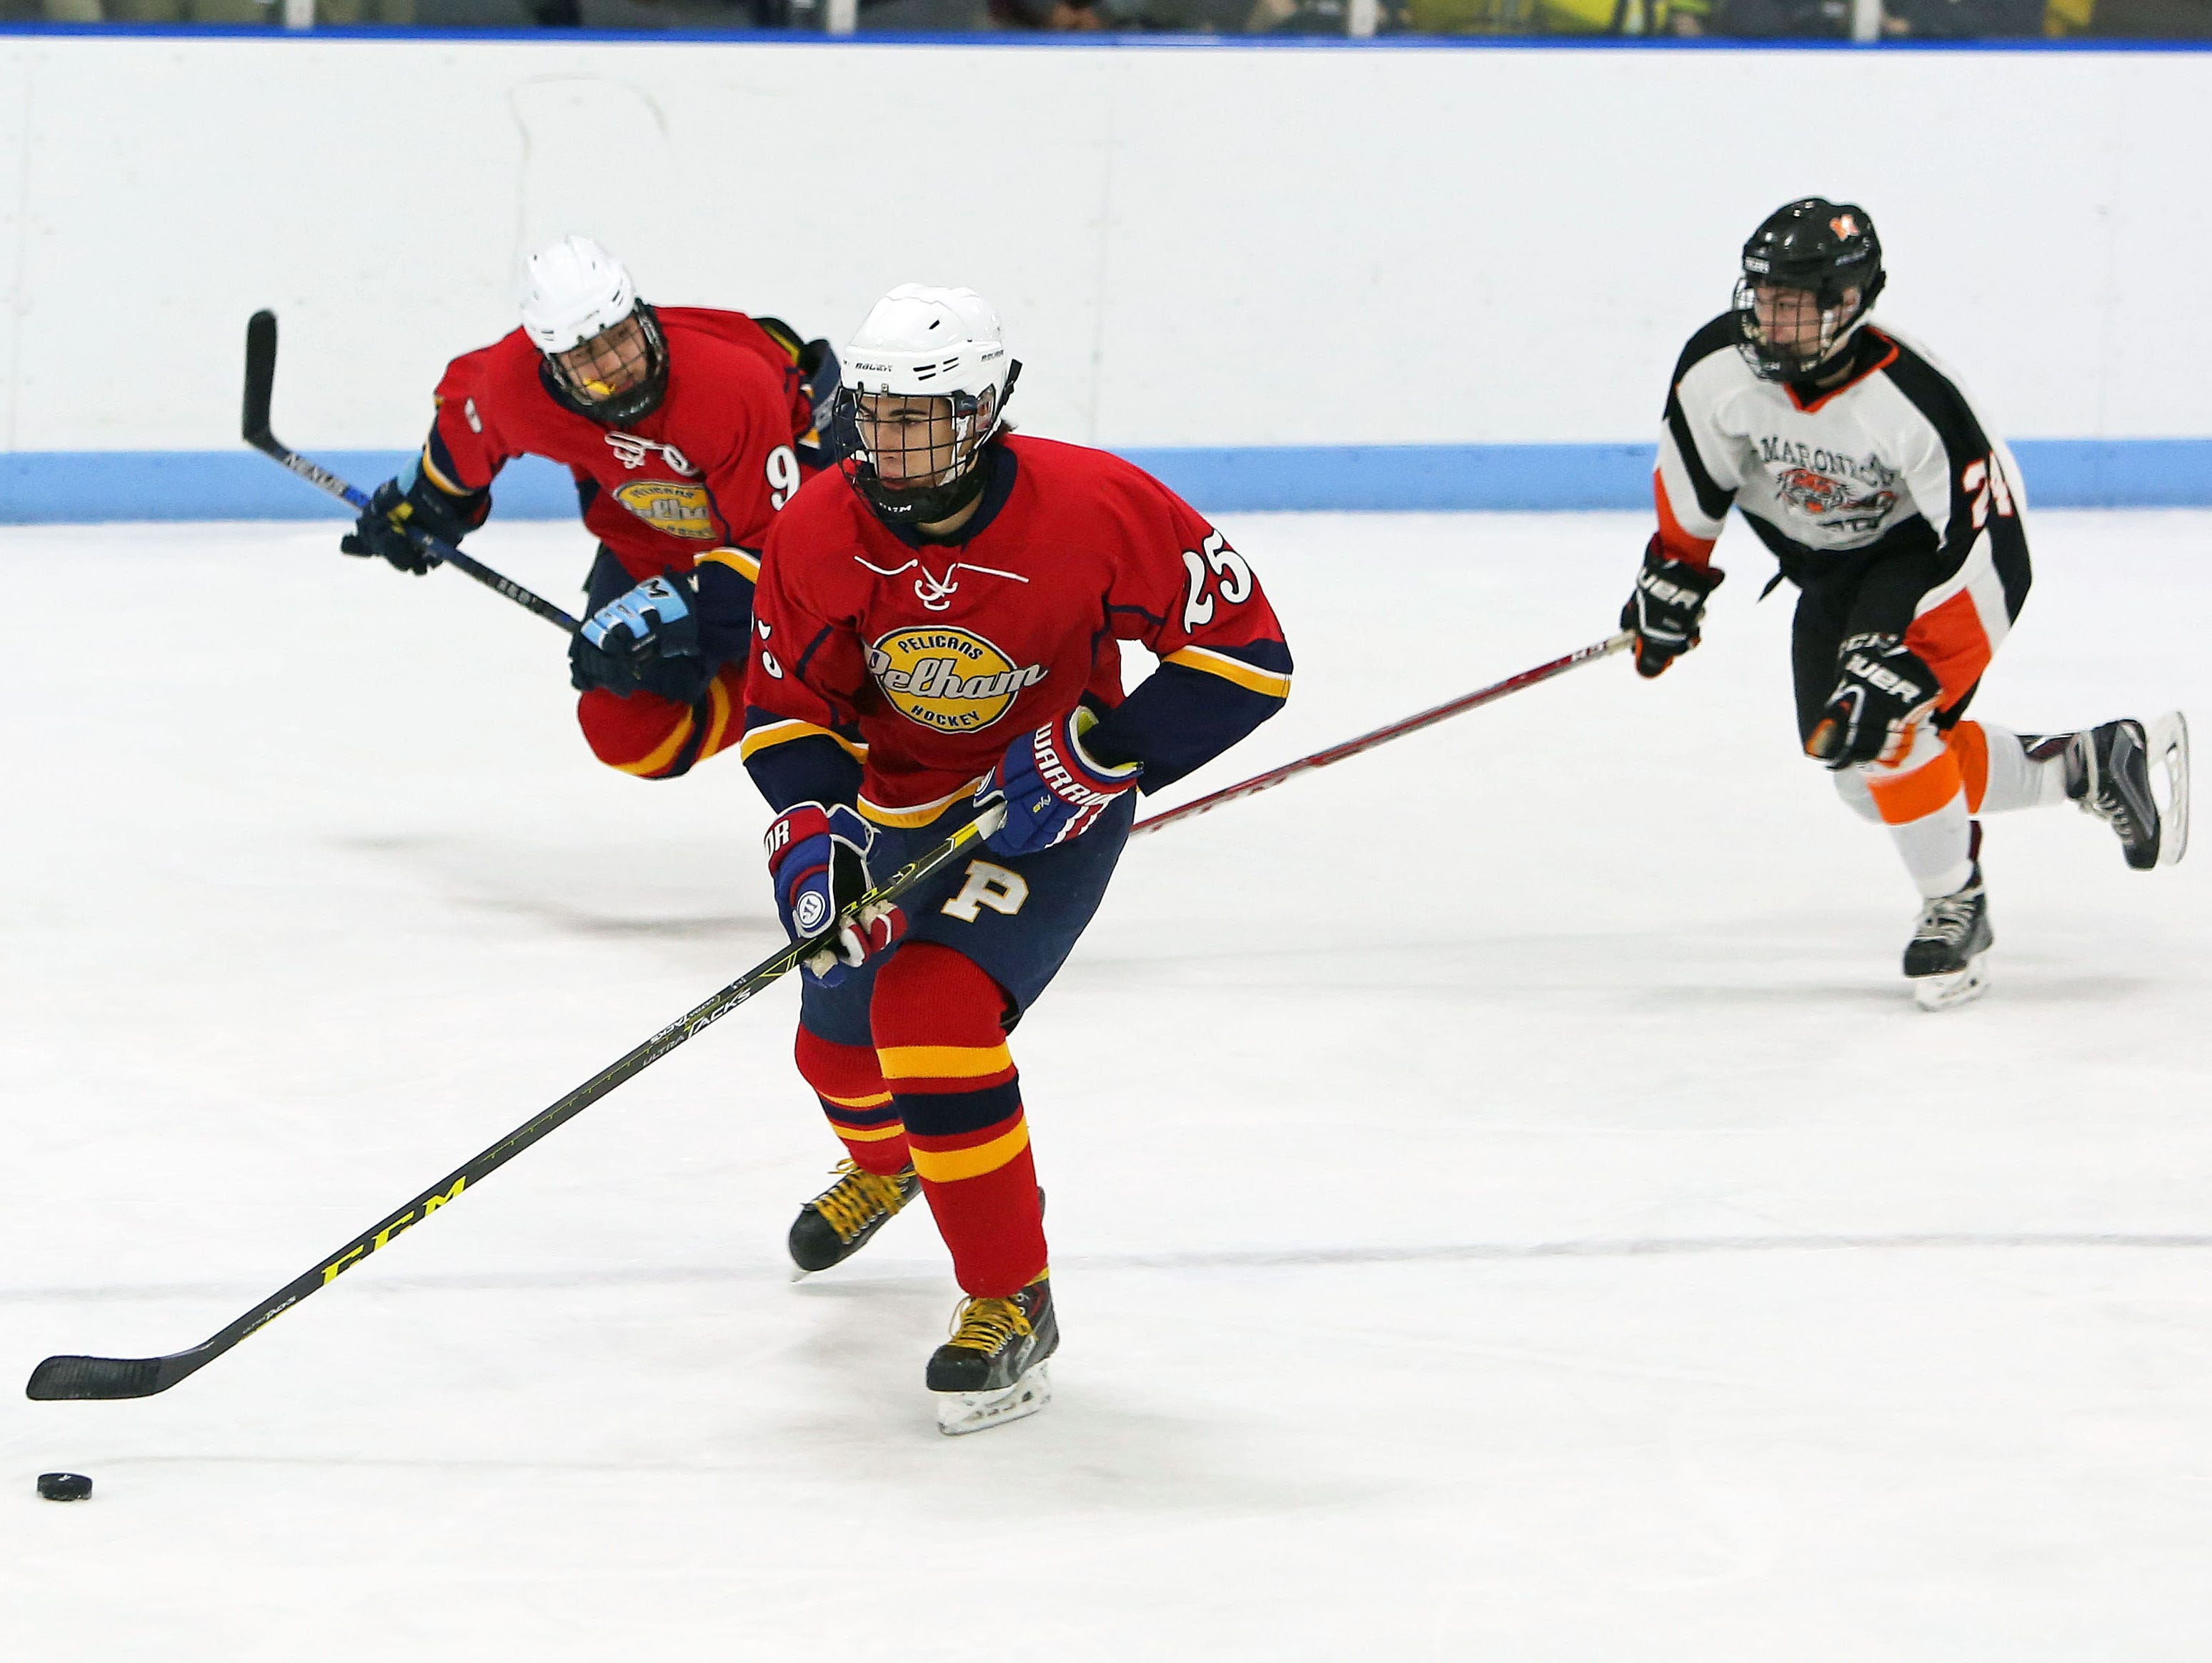 Mamaroneck and Pelham faced off in a hockey game at Hommocks Park Ice Rink in Mamaroneck Jan. 22, 2016.